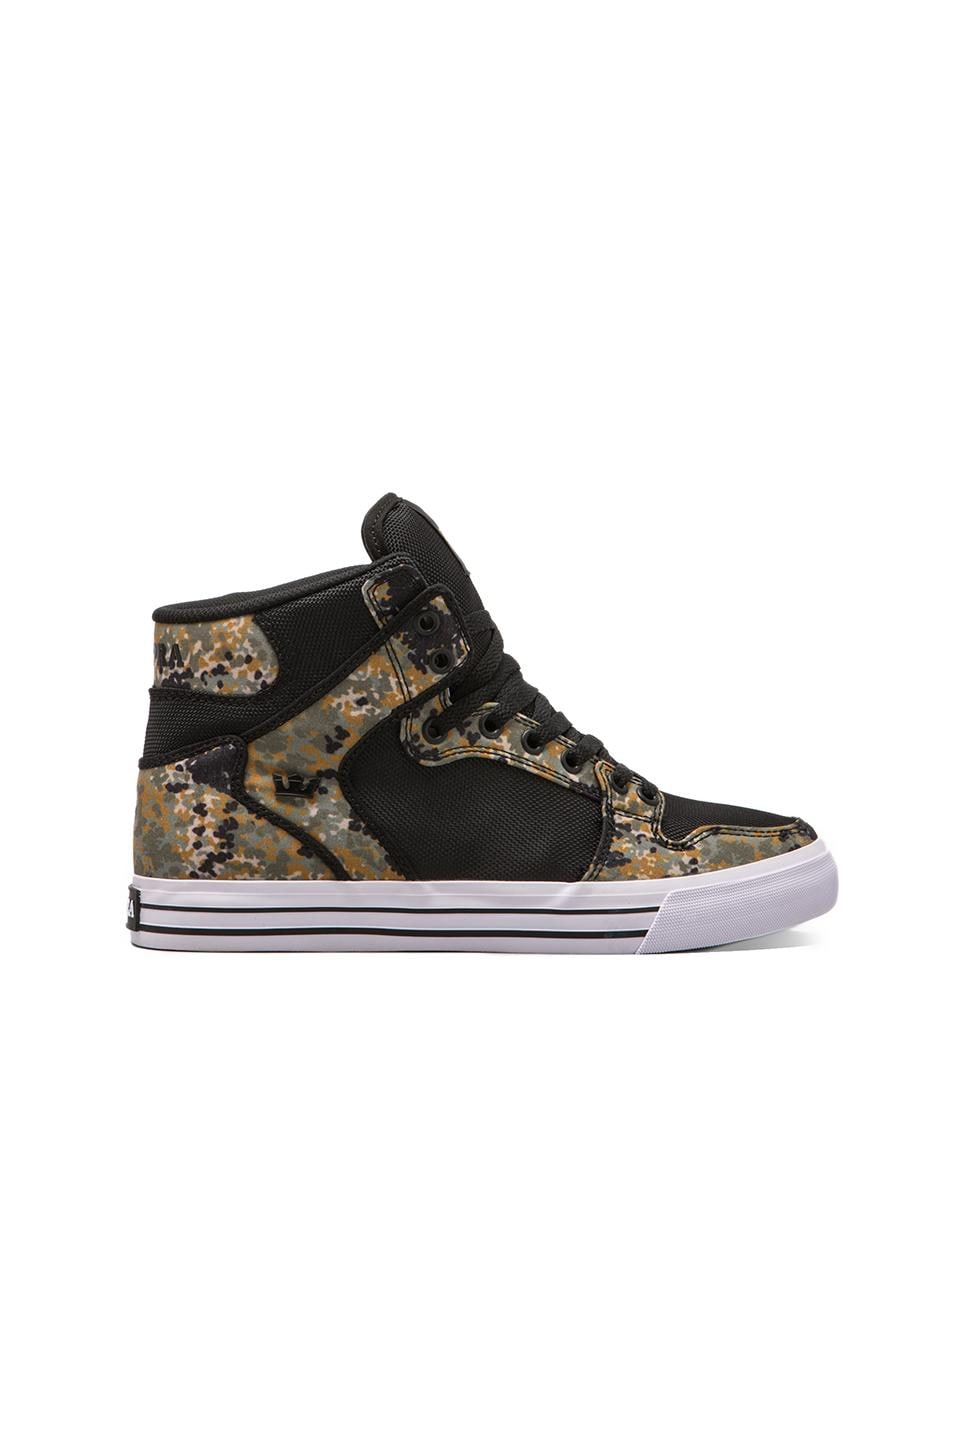 Supra Vaider in Camo/Black